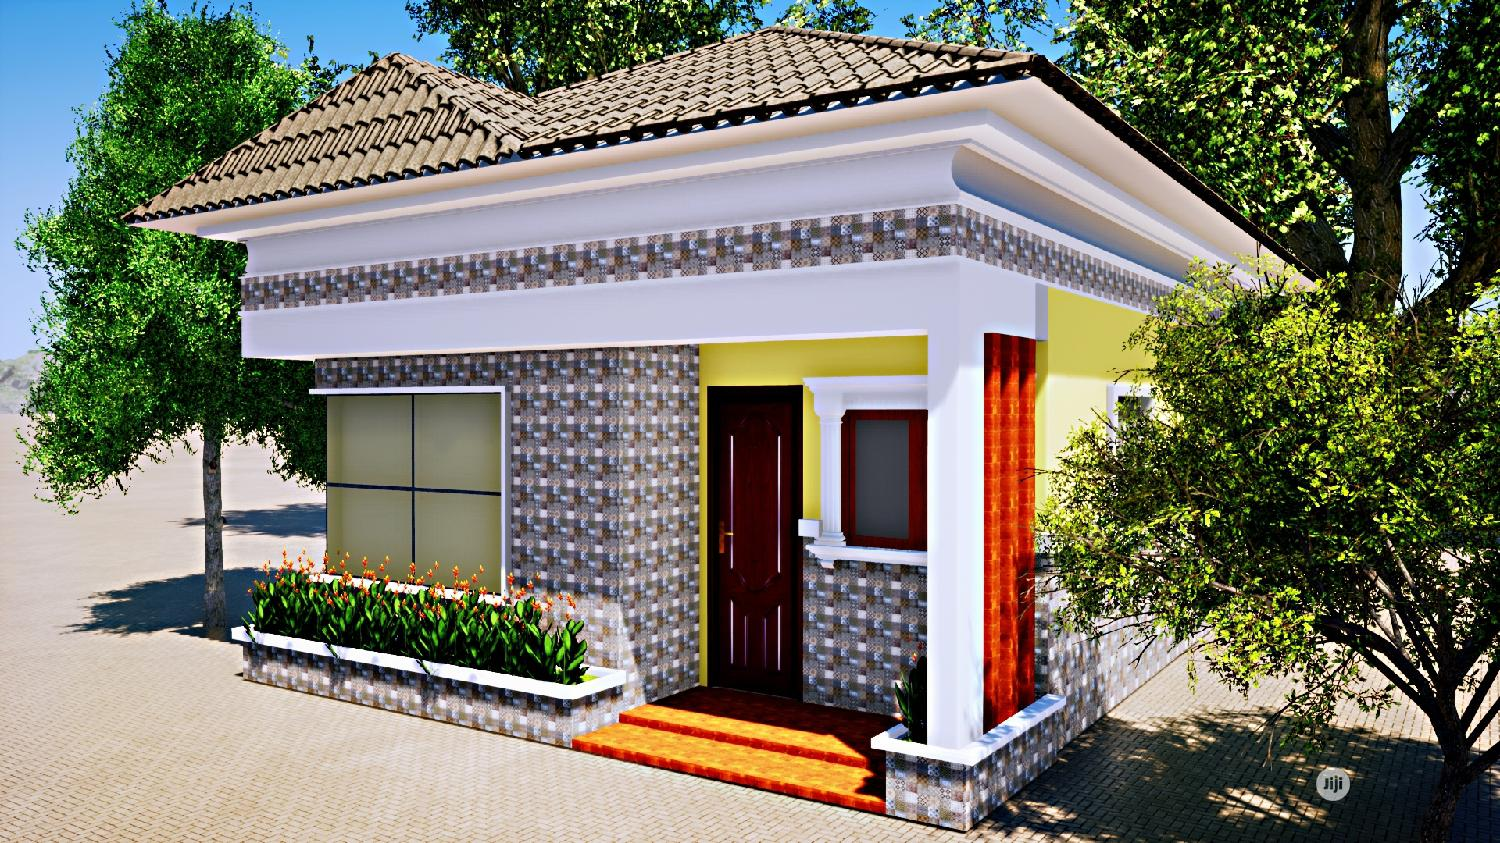 3 Bedrooms Bungalow Building Plan   Building & Trades Services for sale in Kuje, Abuja (FCT) State, Nigeria